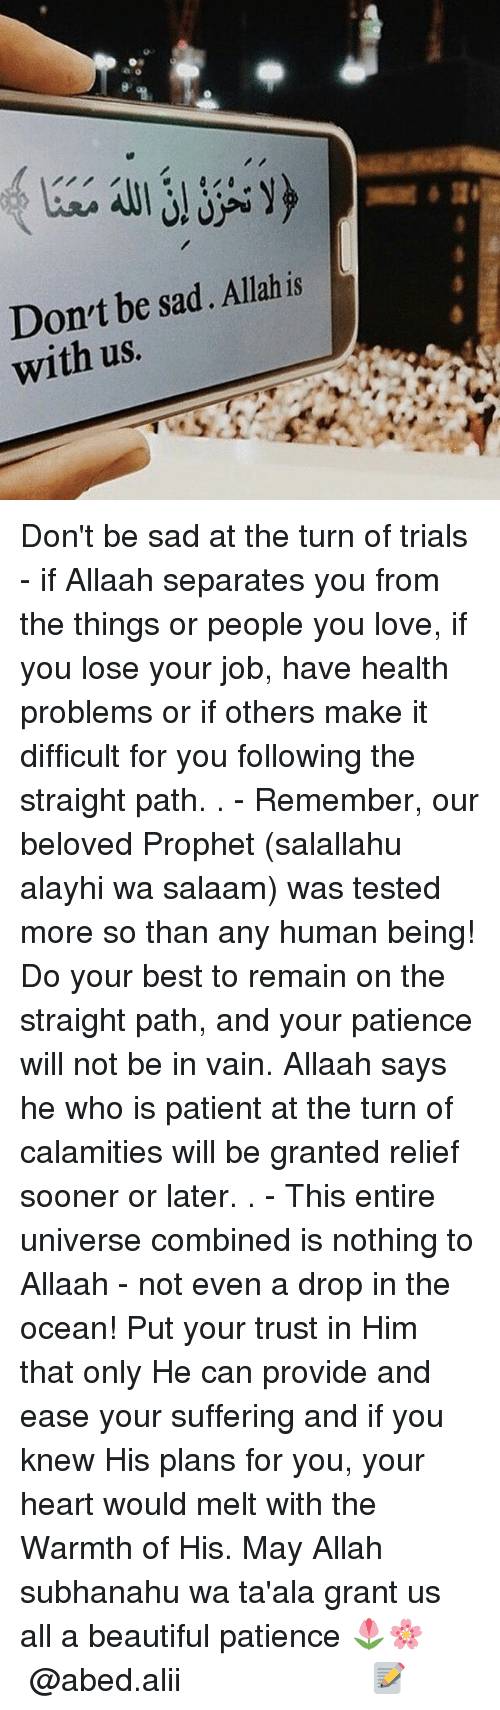 Beautiful, Love, and Memes: Don't be sad. Allah is  with us. Don't be sad at the turn of trials - if Allaah separates you from the things or people you love, if you lose your job, have health problems or if others make it difficult for you following the straight path. . - Remember, our beloved Prophet (salallahu alayhi wa salaam) was tested more so than any human being! Do your best to remain on the straight path, and your patience will not be in vain. Allaah says he who is patient at the turn of calamities will be granted relief sooner or later. . - This entire universe combined is nothing to Allaah - not even a drop in the ocean! Put your trust in Him that only He can provide and ease your suffering and if you knew His plans for you, your heart would melt with the Warmth of His. May Allah subhanahu wa ta'ala grant us all a beautiful patience 🌷🌸 ▃▃▃▃▃▃▃▃▃▃▃▃▃▃▃▃▃▃▃▃ @abed.alii 📝